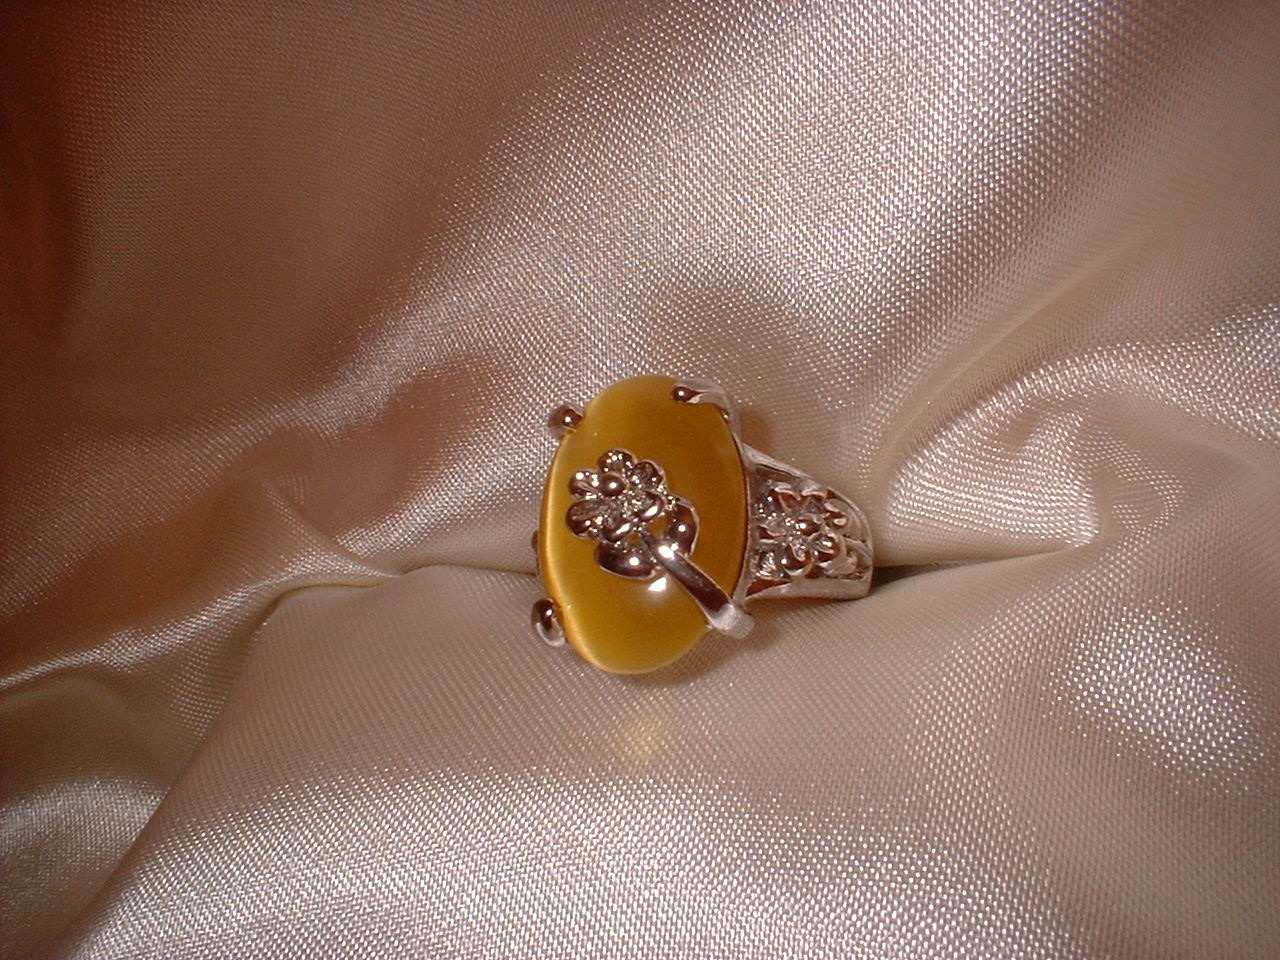 Flower ring sz 5.5 darker stone side